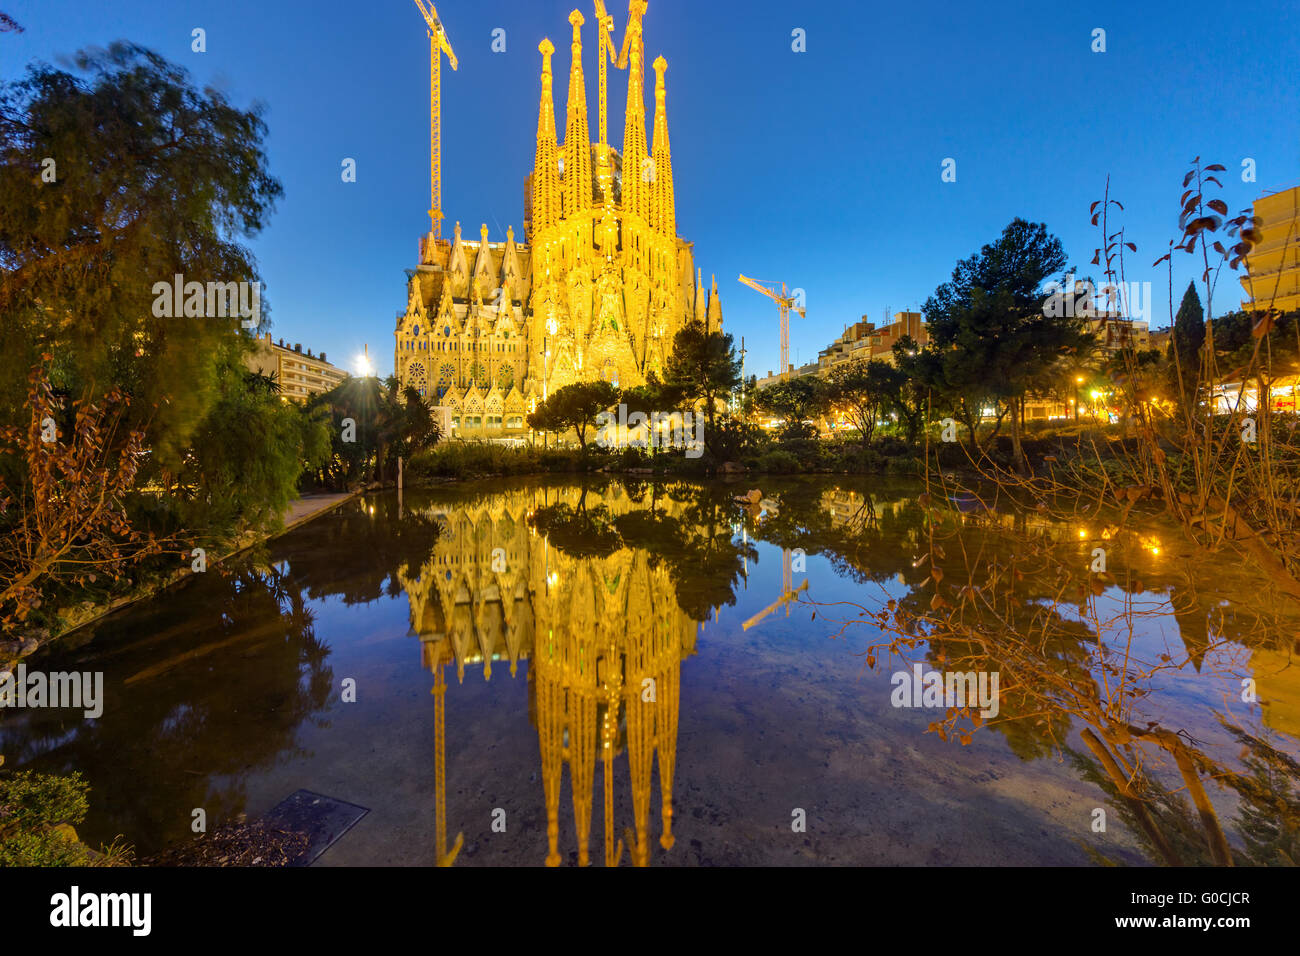 The famous Sagrada Familia in Barcelona at dawn - Stock Image